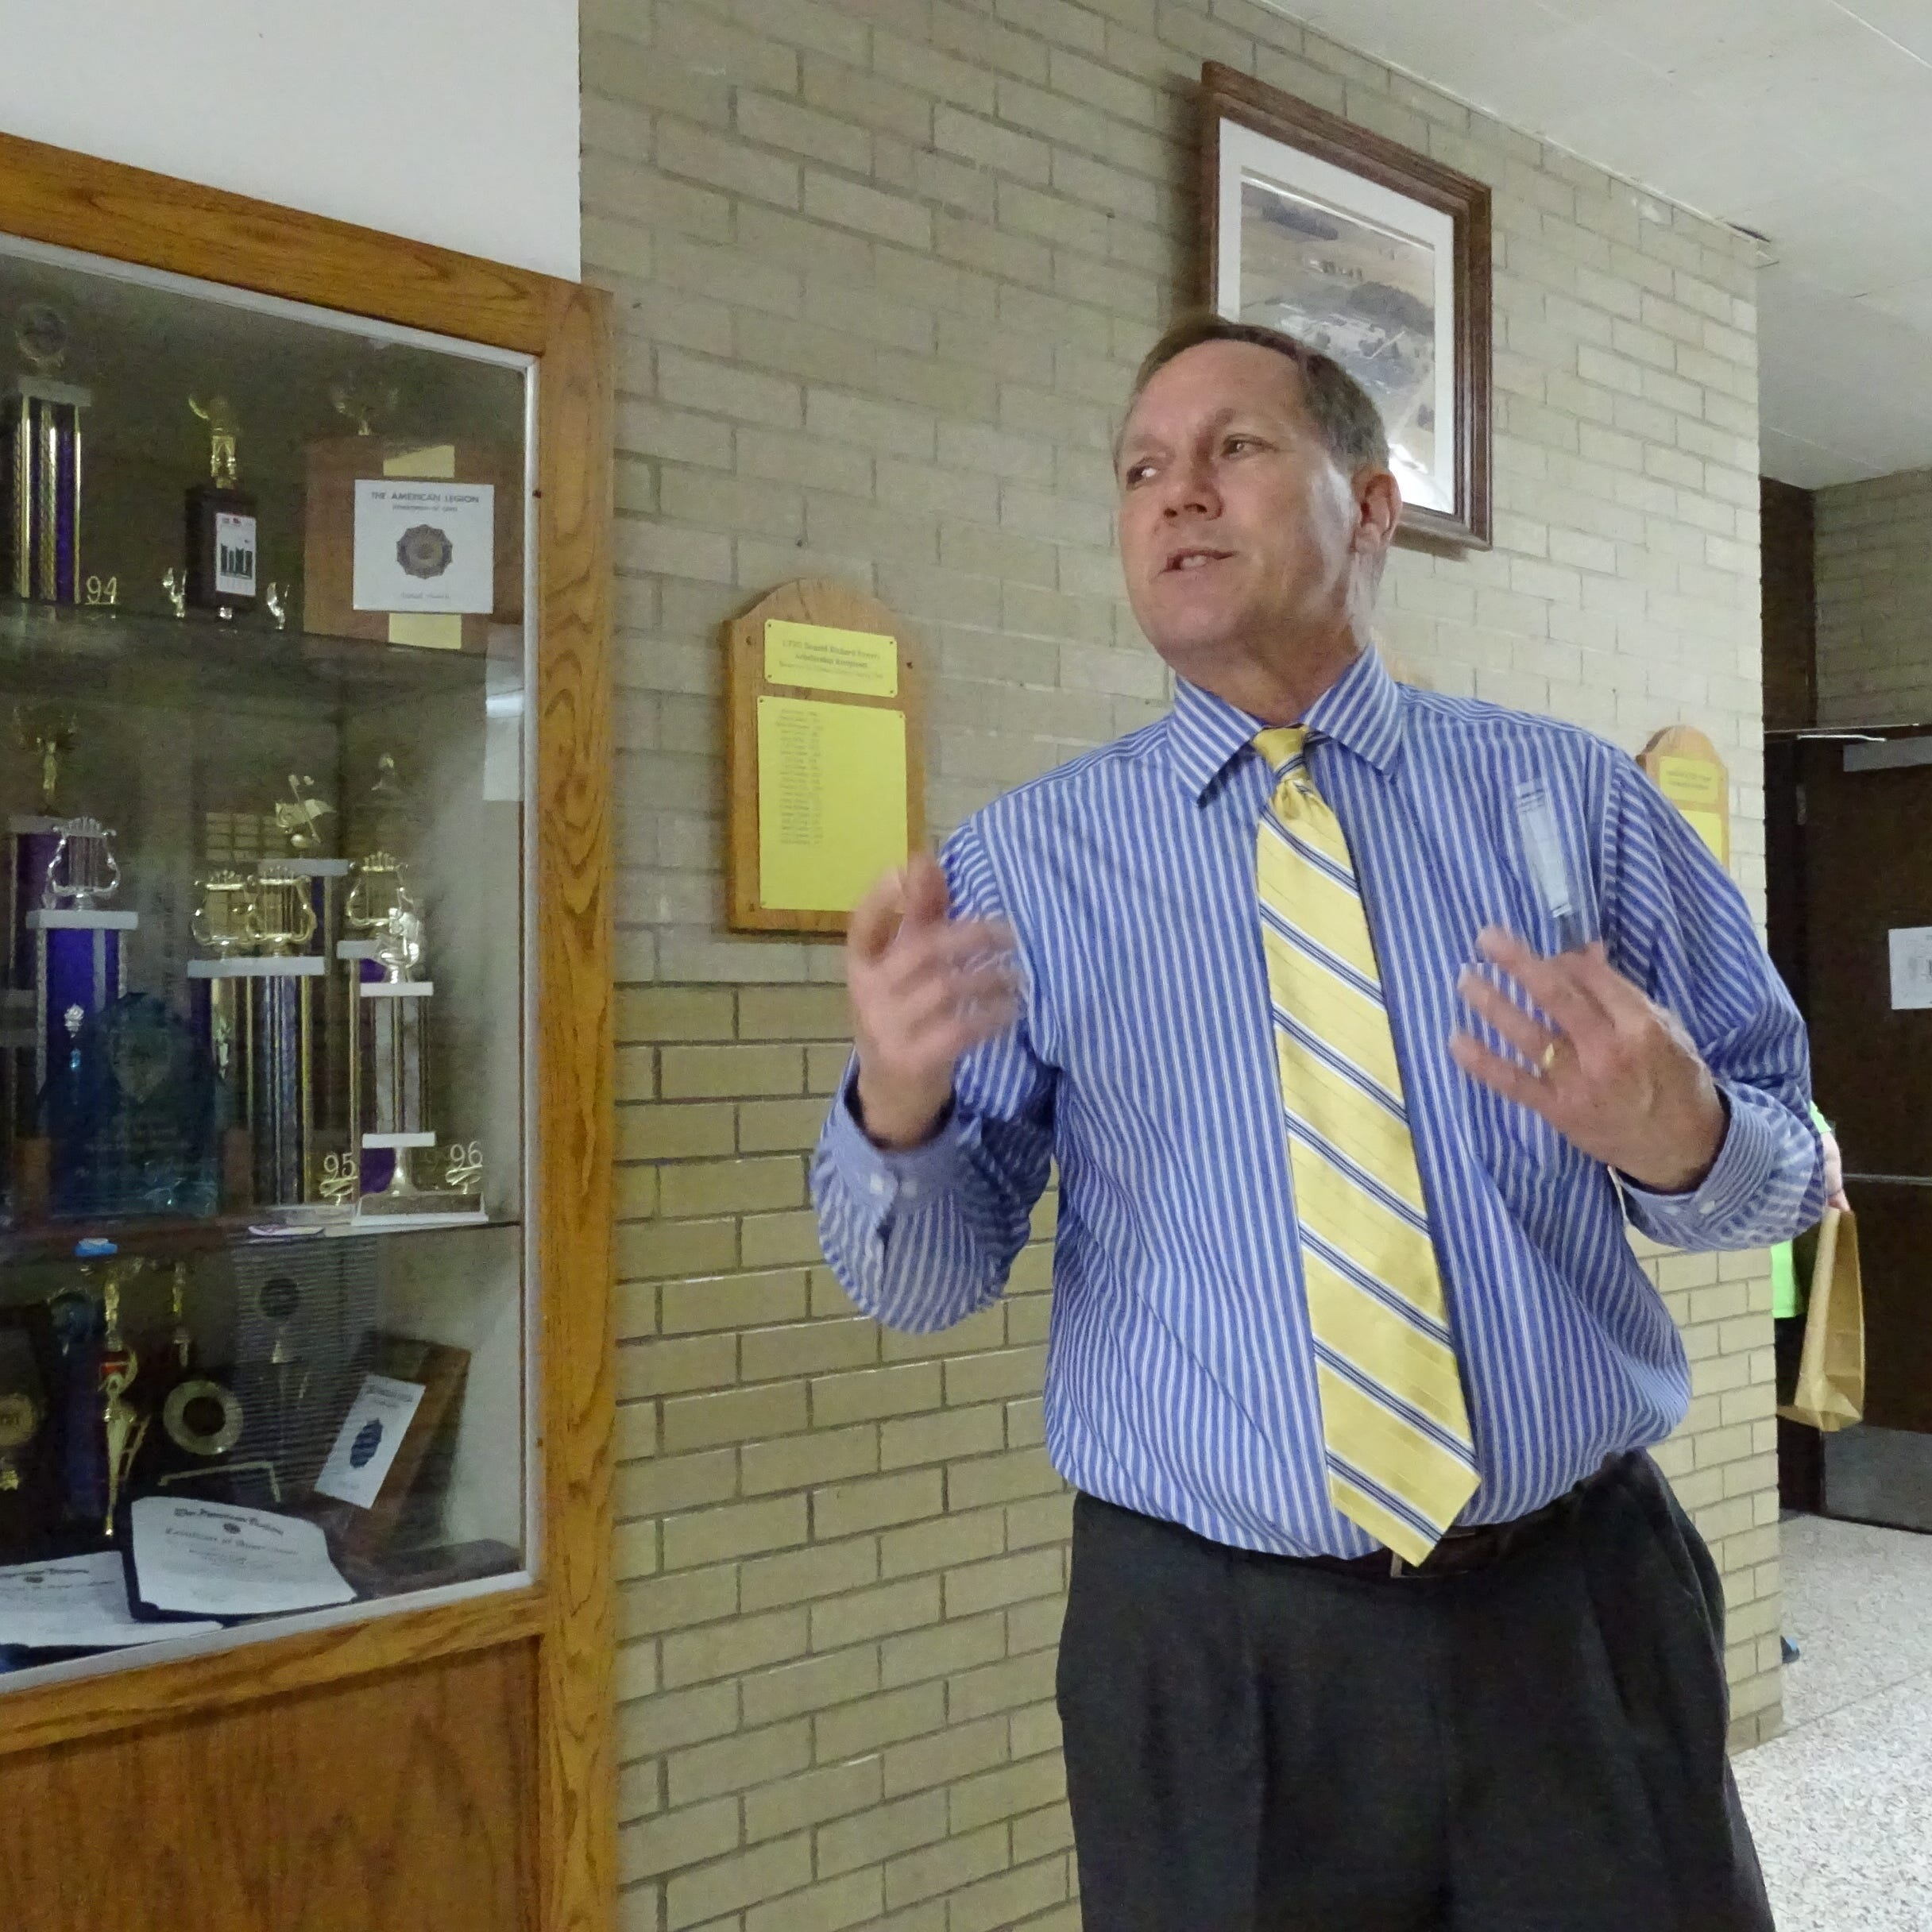 Wynford will break ground for new building on May 19